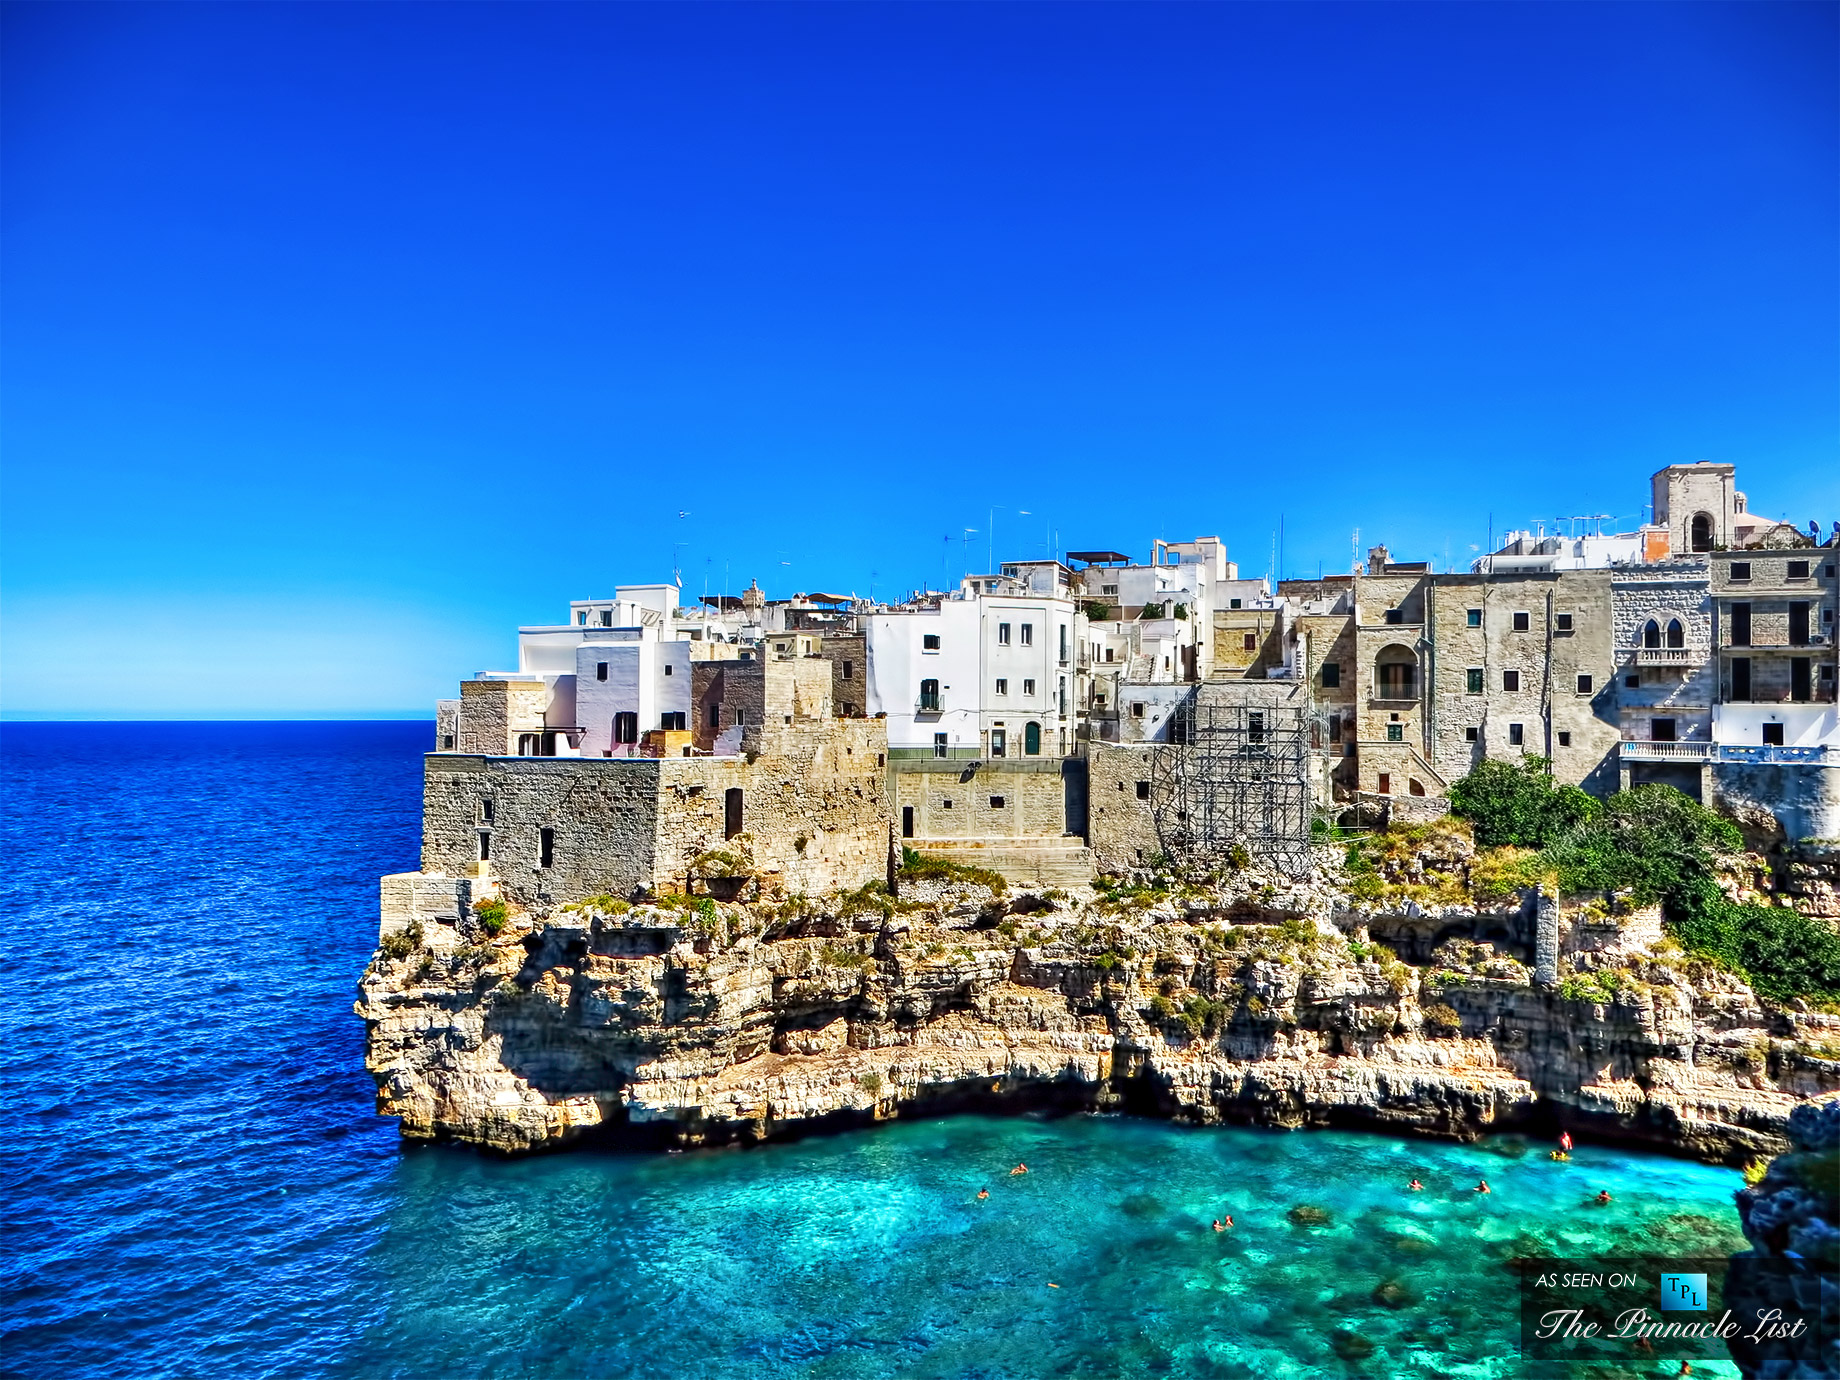 1-Rising-Vertically-Above-the-Adriatic-Sea-Old-Town-Polignano-a-Mare-Apulia-Italy-The-Pinnacle-List-TPL.jpg